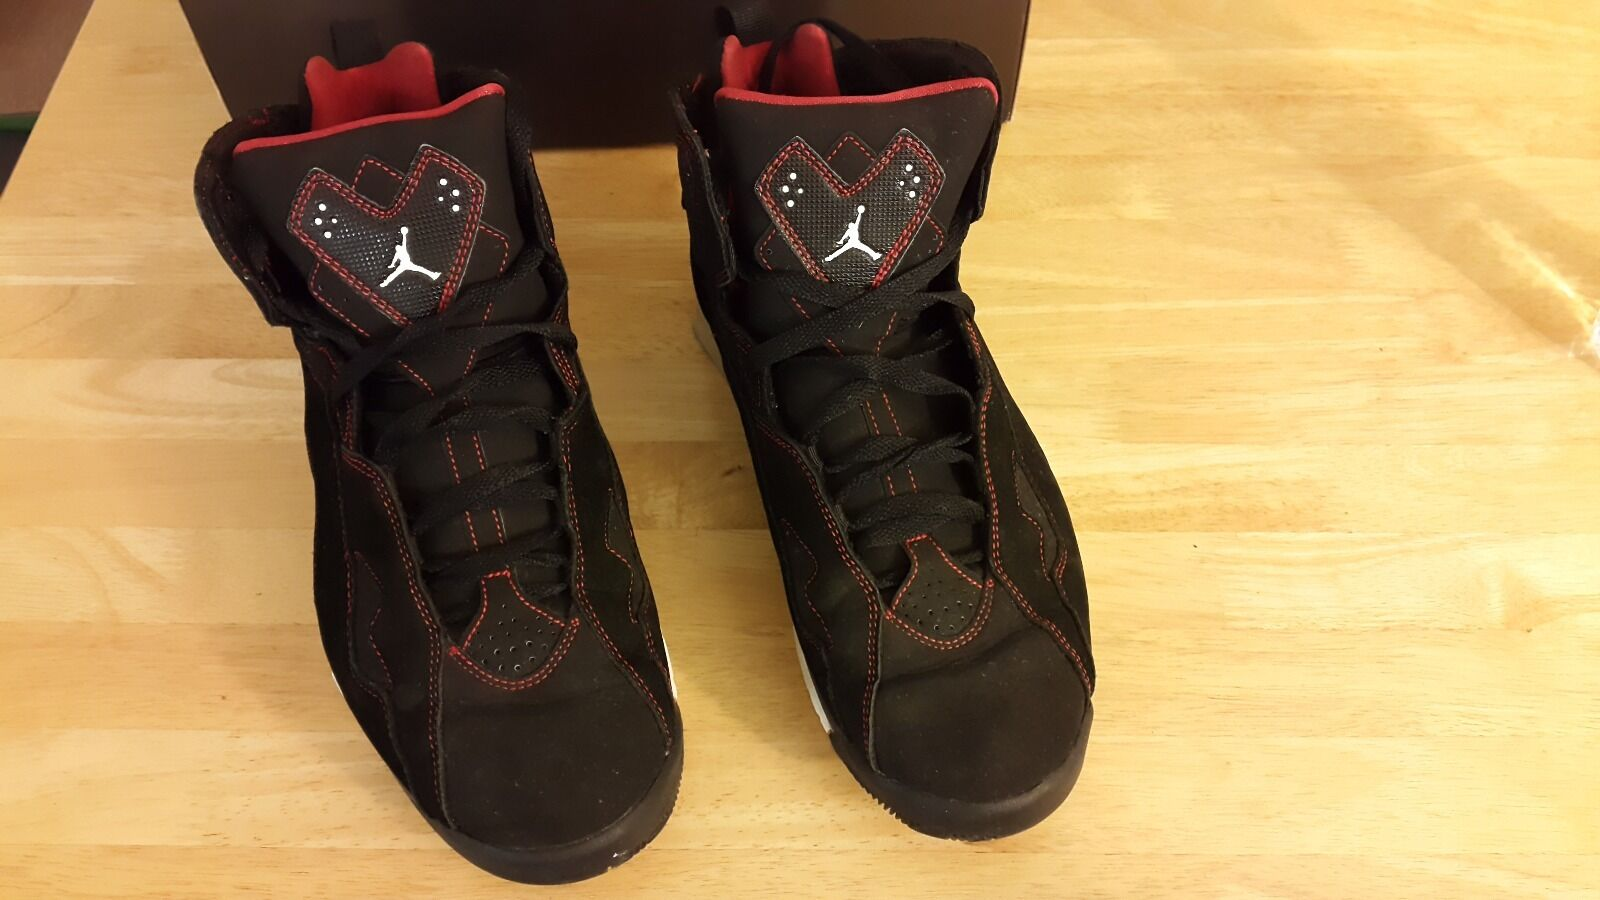 Nike Jordan True Flight Price reduction The most popular shoes for men and women